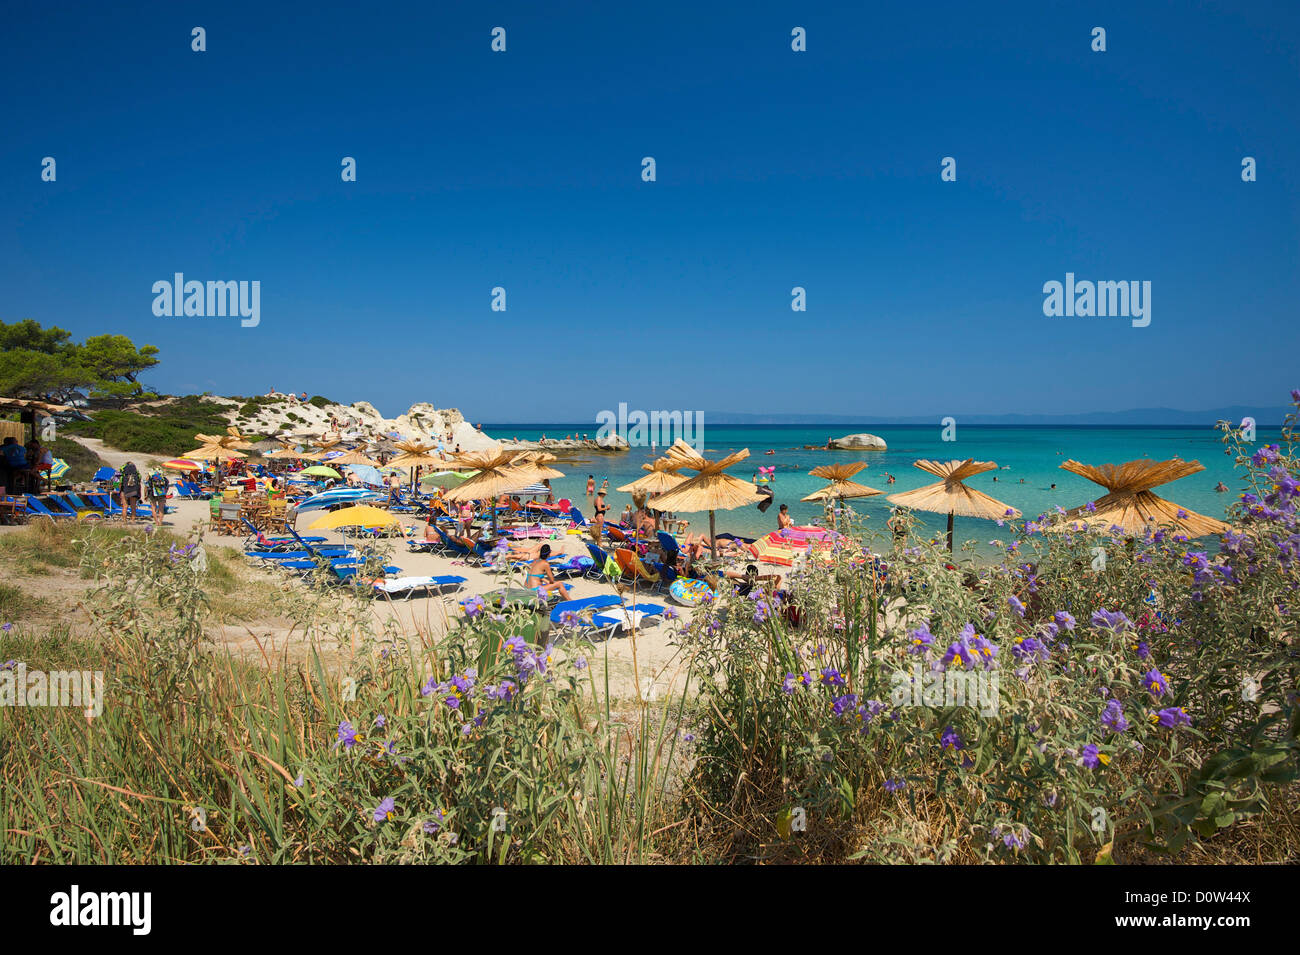 Chalkidiki, Greece, Halkidiki, Travel, vacation, Europe, European, day, Portokali Beach, Kavourotypes, Sithonia, Stock Photo